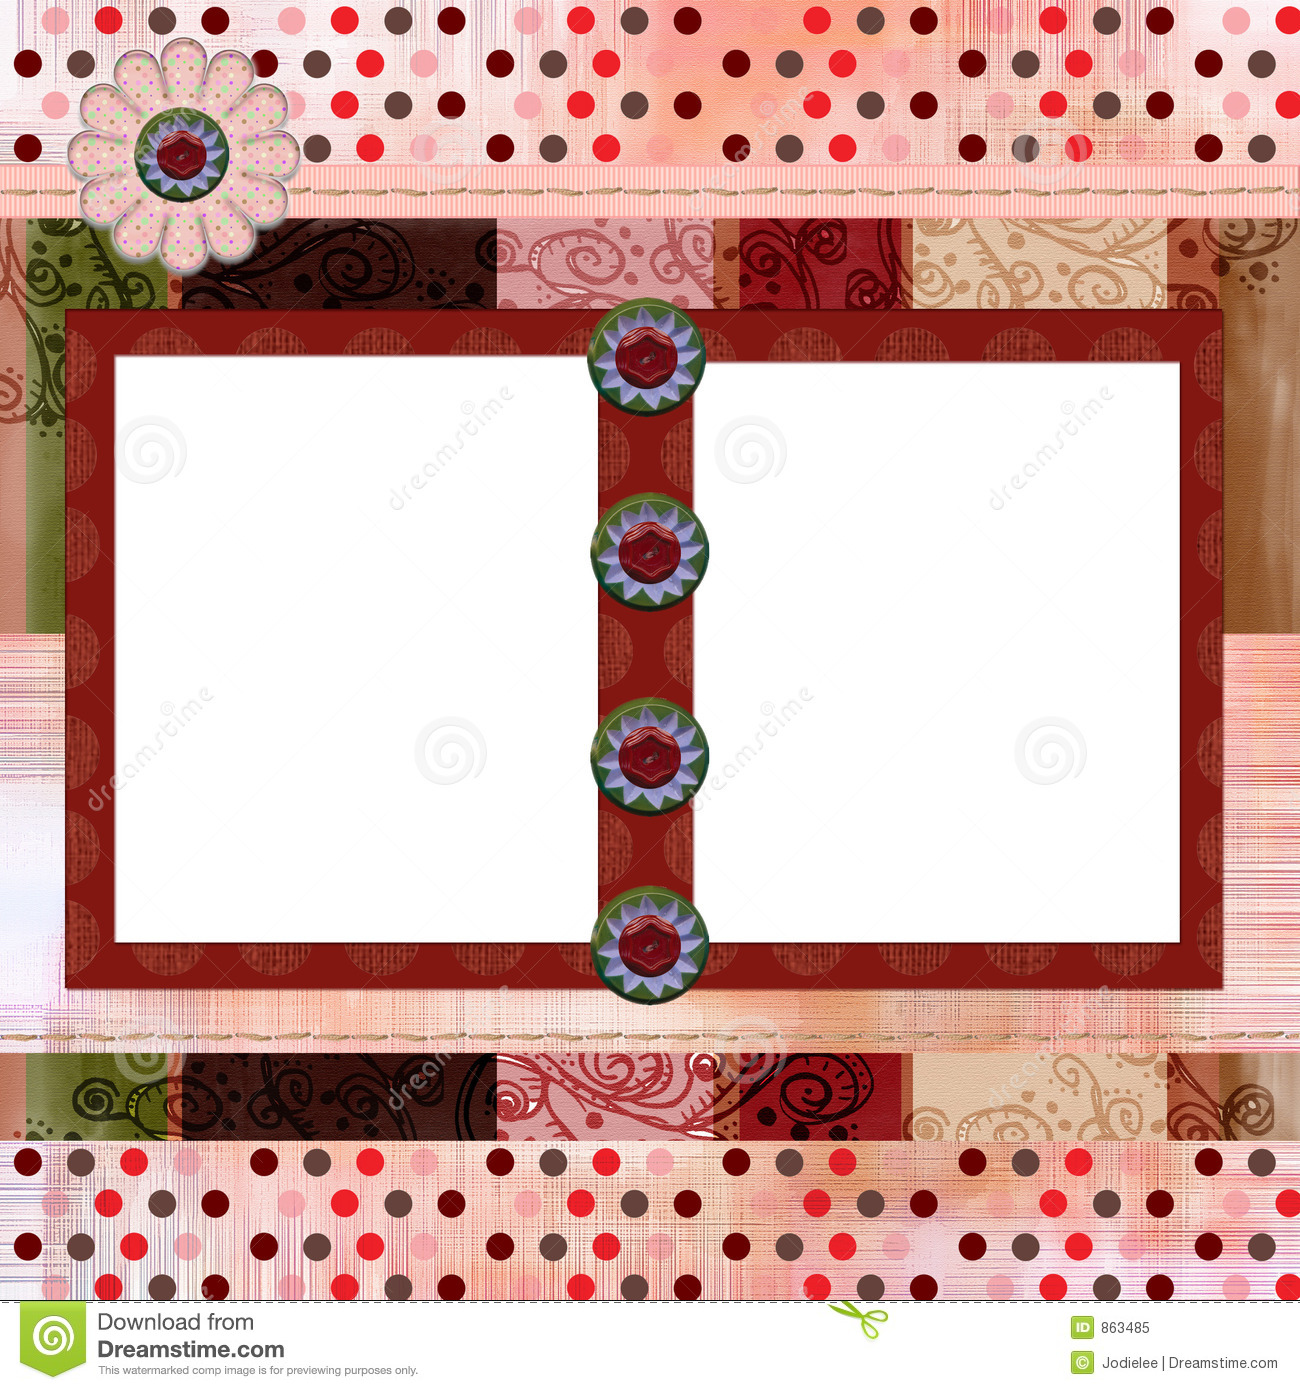 Scrapbook Page Templates Free Scrapbook Page Layout School Stock